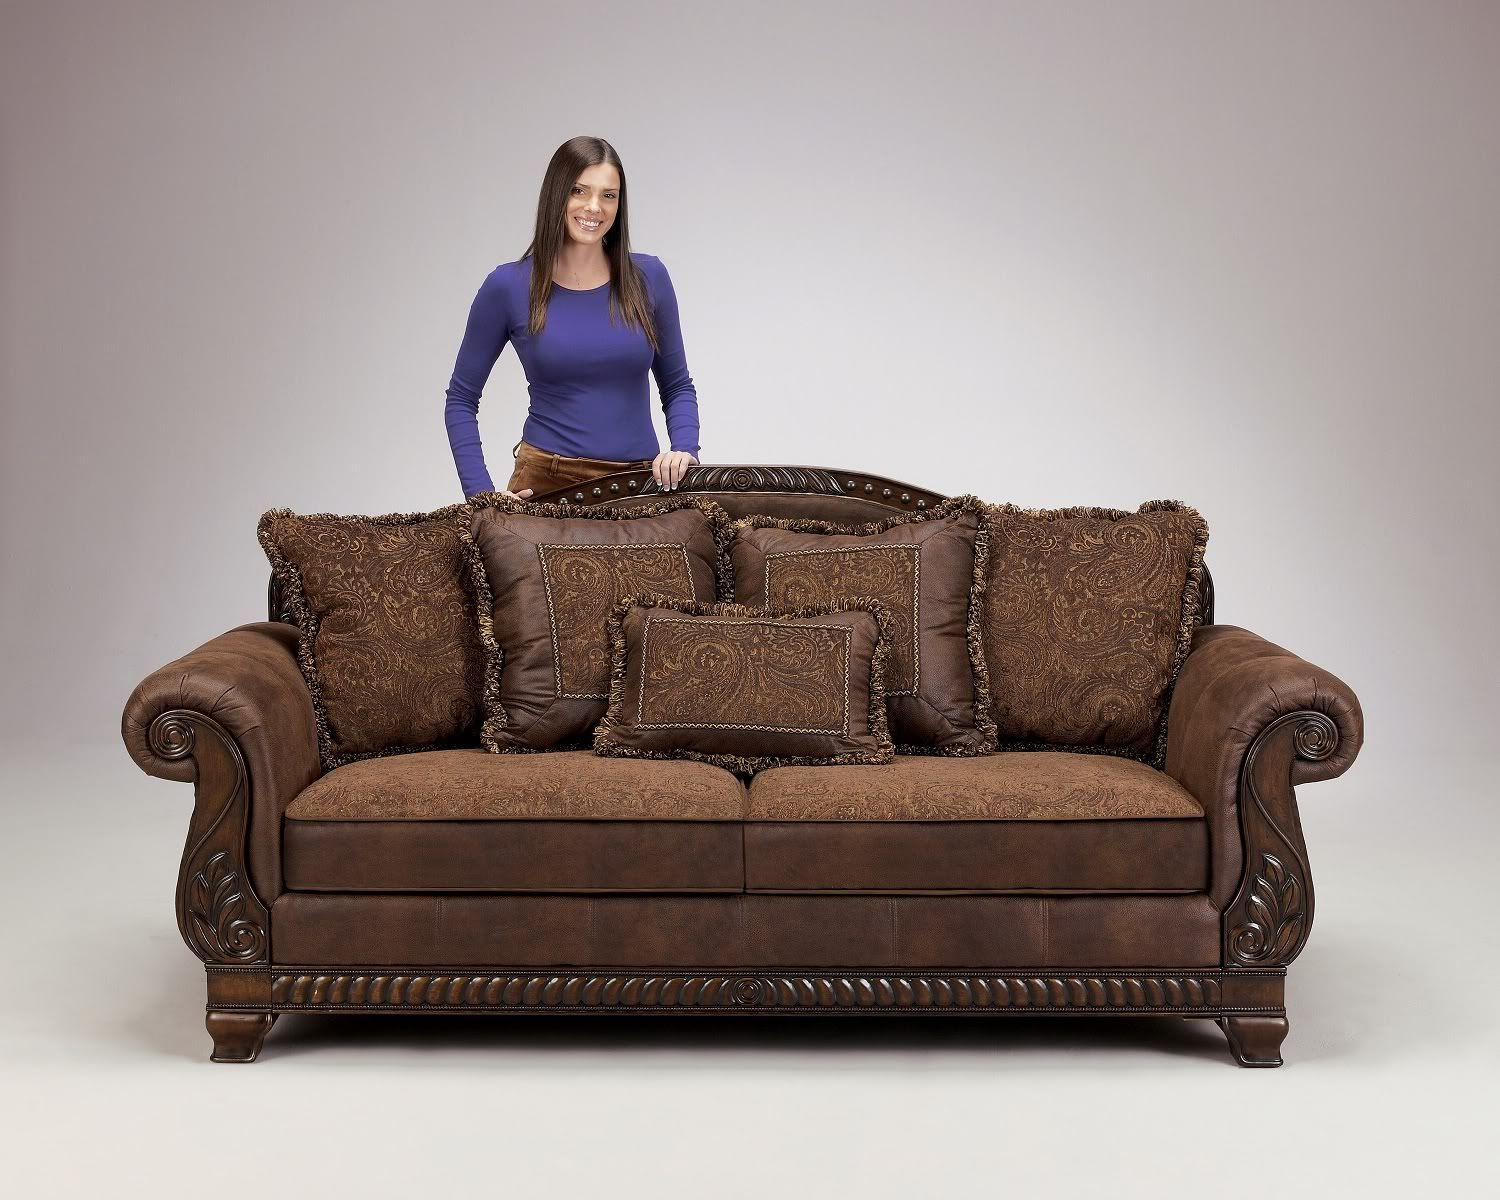 Truffle traditional sofa set old world couch wood trim cozy ...